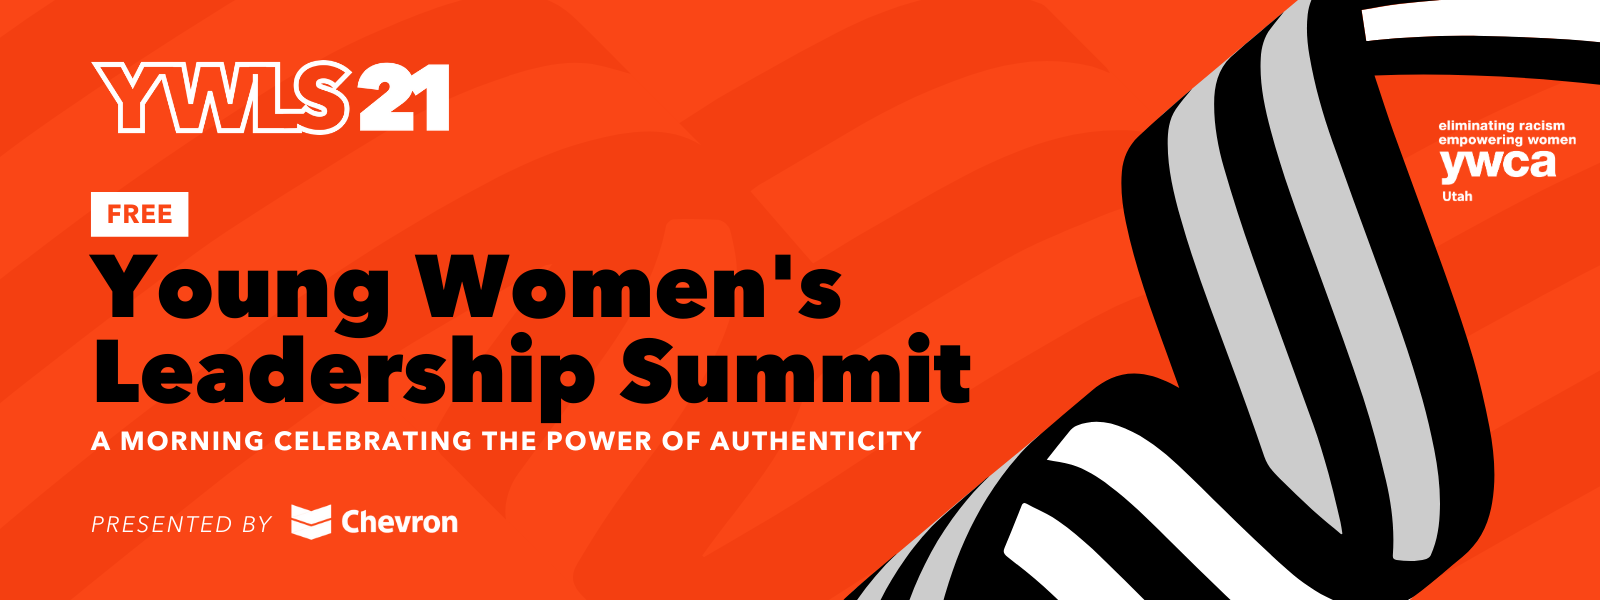 Young Women's Leadership Summit: A Morning Celebrating the Power of Authenticity